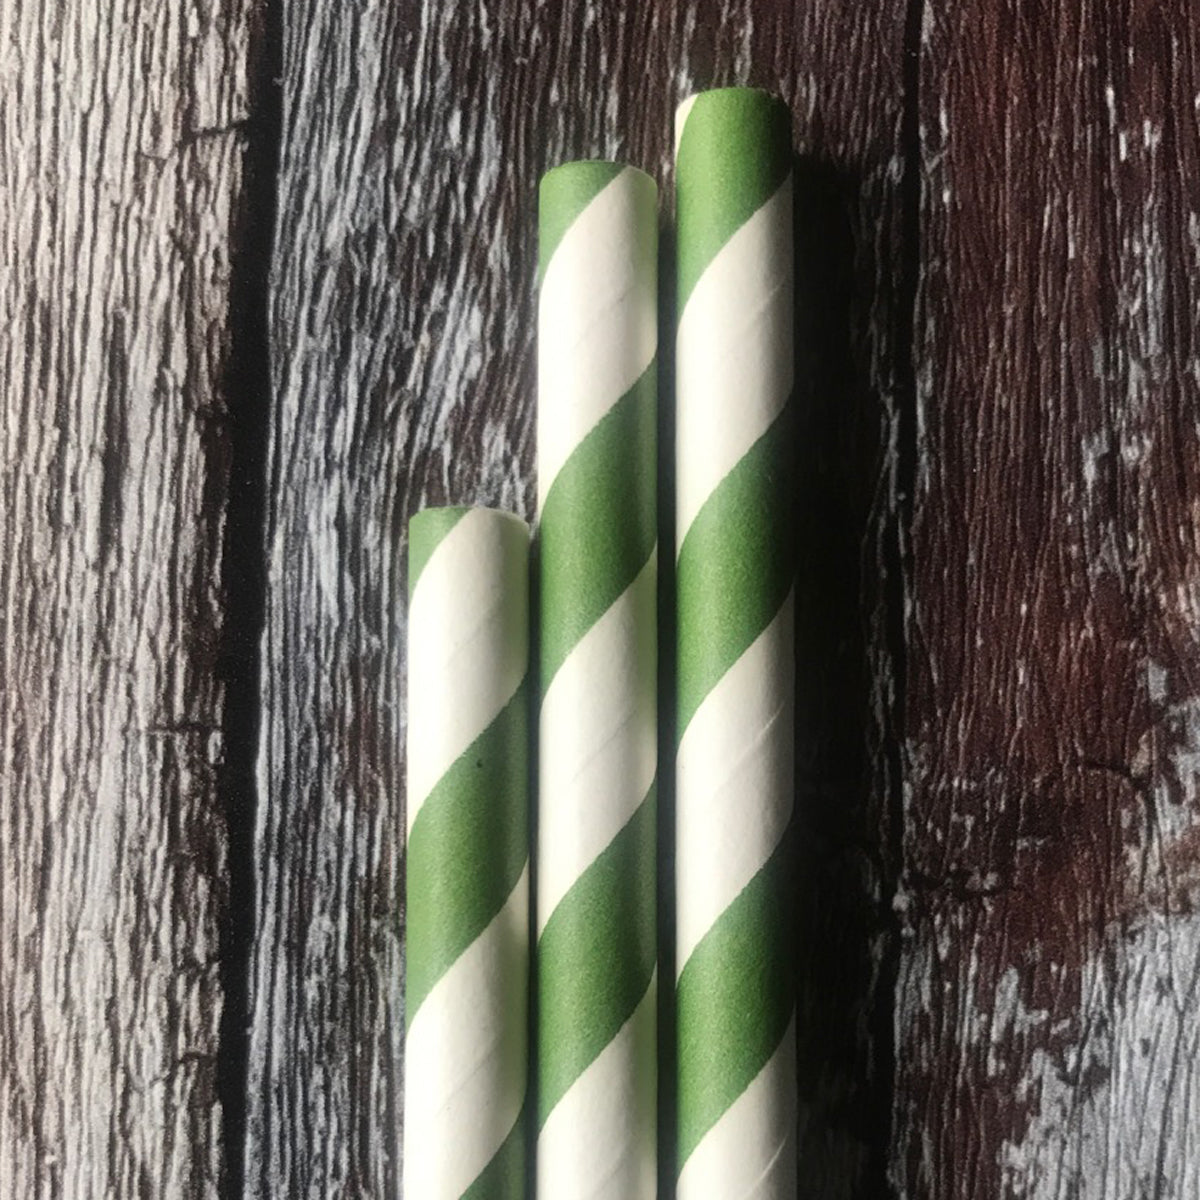 CLASSIC 6mm Bulk Paper Straws - Striped Green